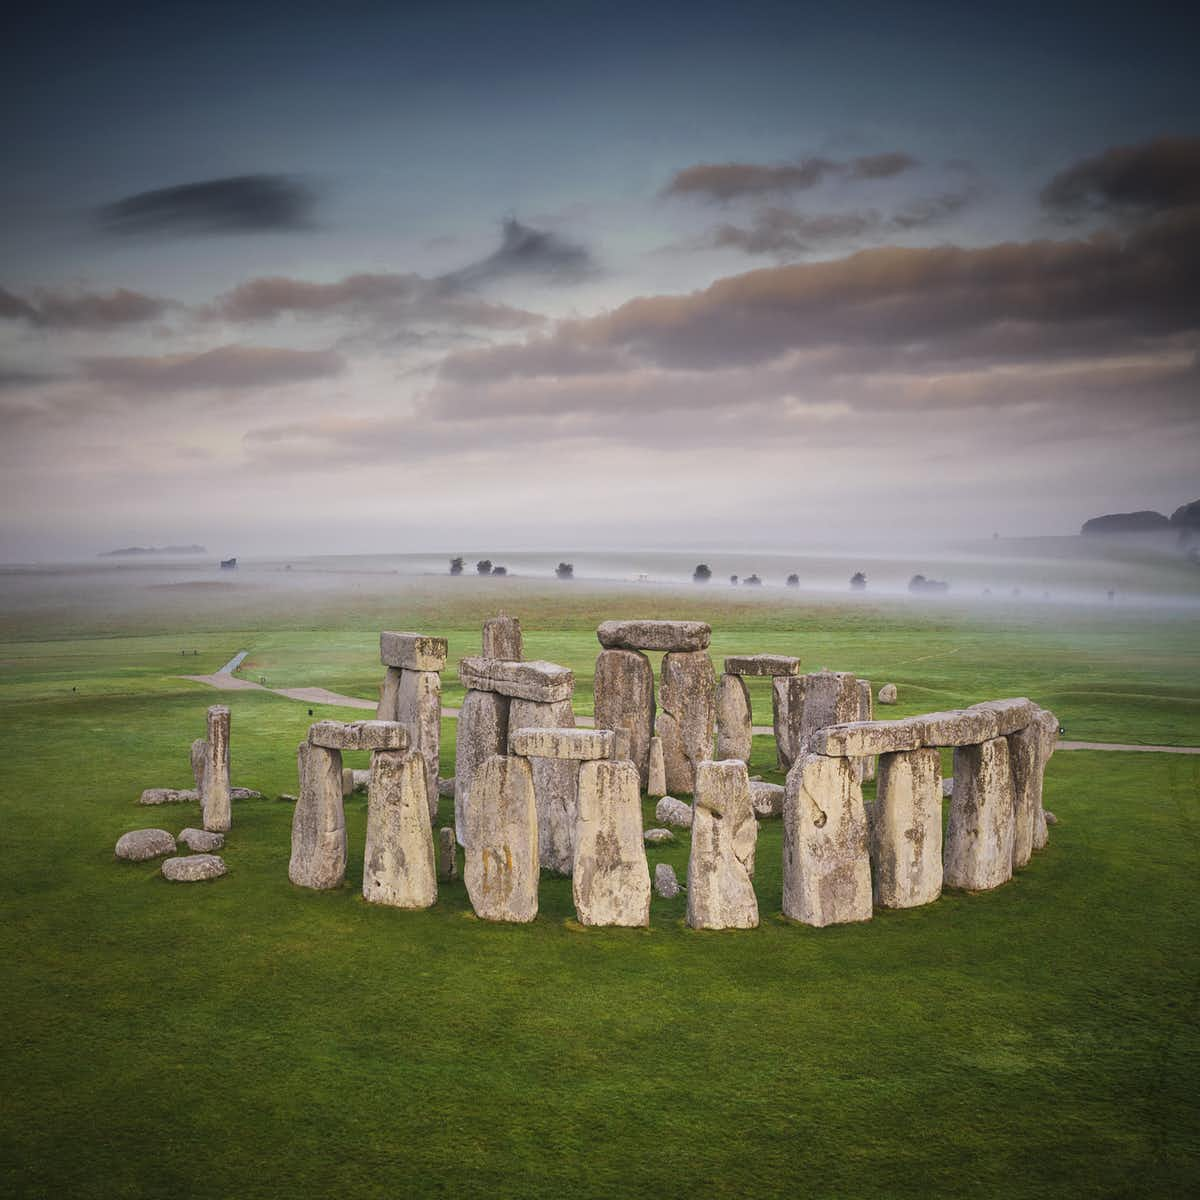 The 15 Most Popular Artnet News Stories of 2020, From Miserable Restoration Fails to the True Purpose of Stonehenge